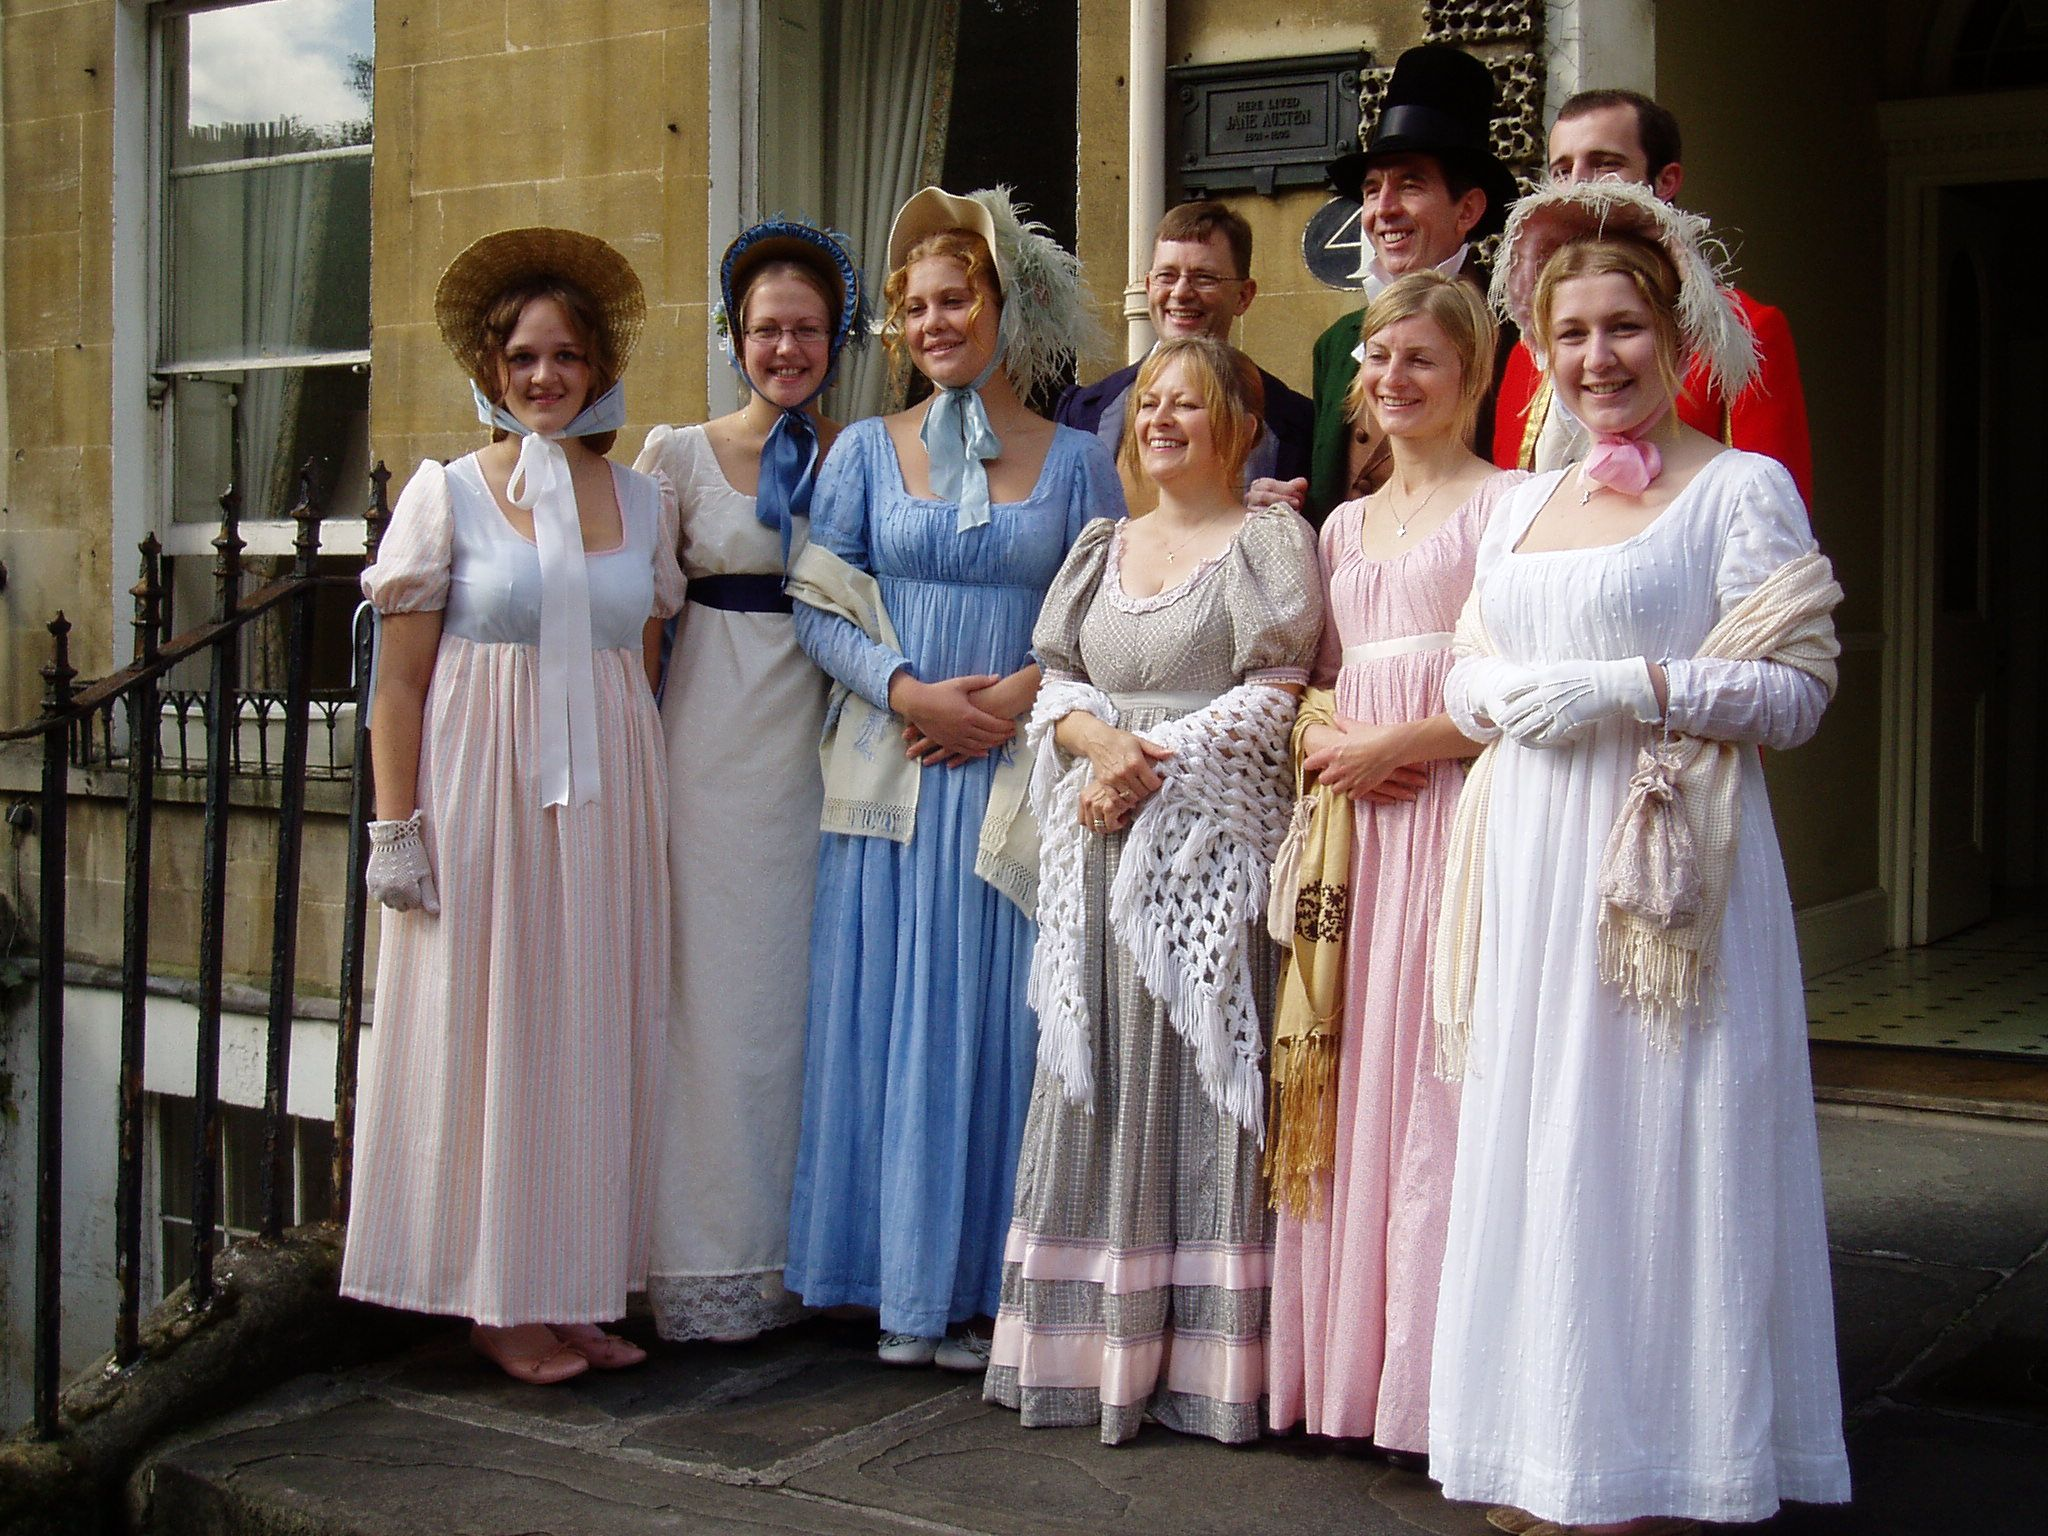 Bath events: The Jane Austen Festival